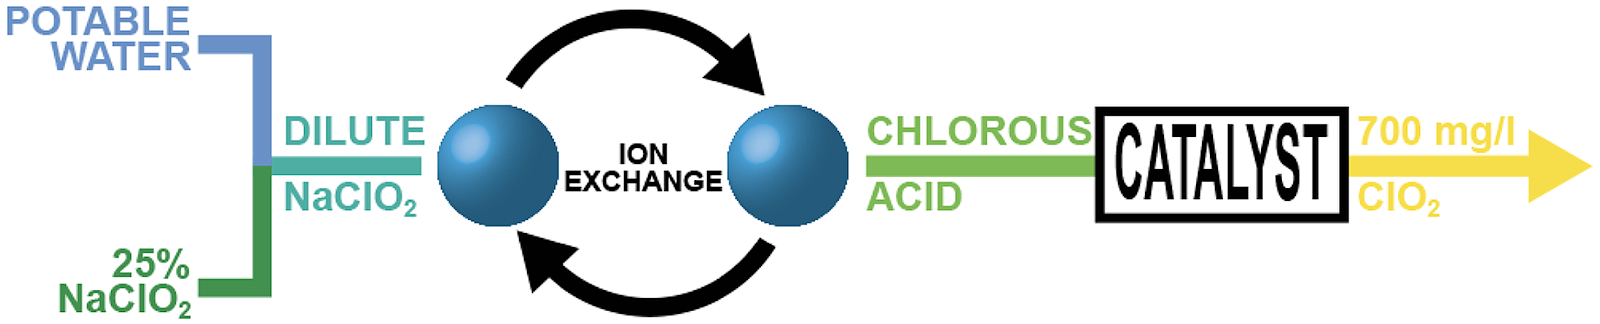 Catalytic Chlorine Dioxide diagram